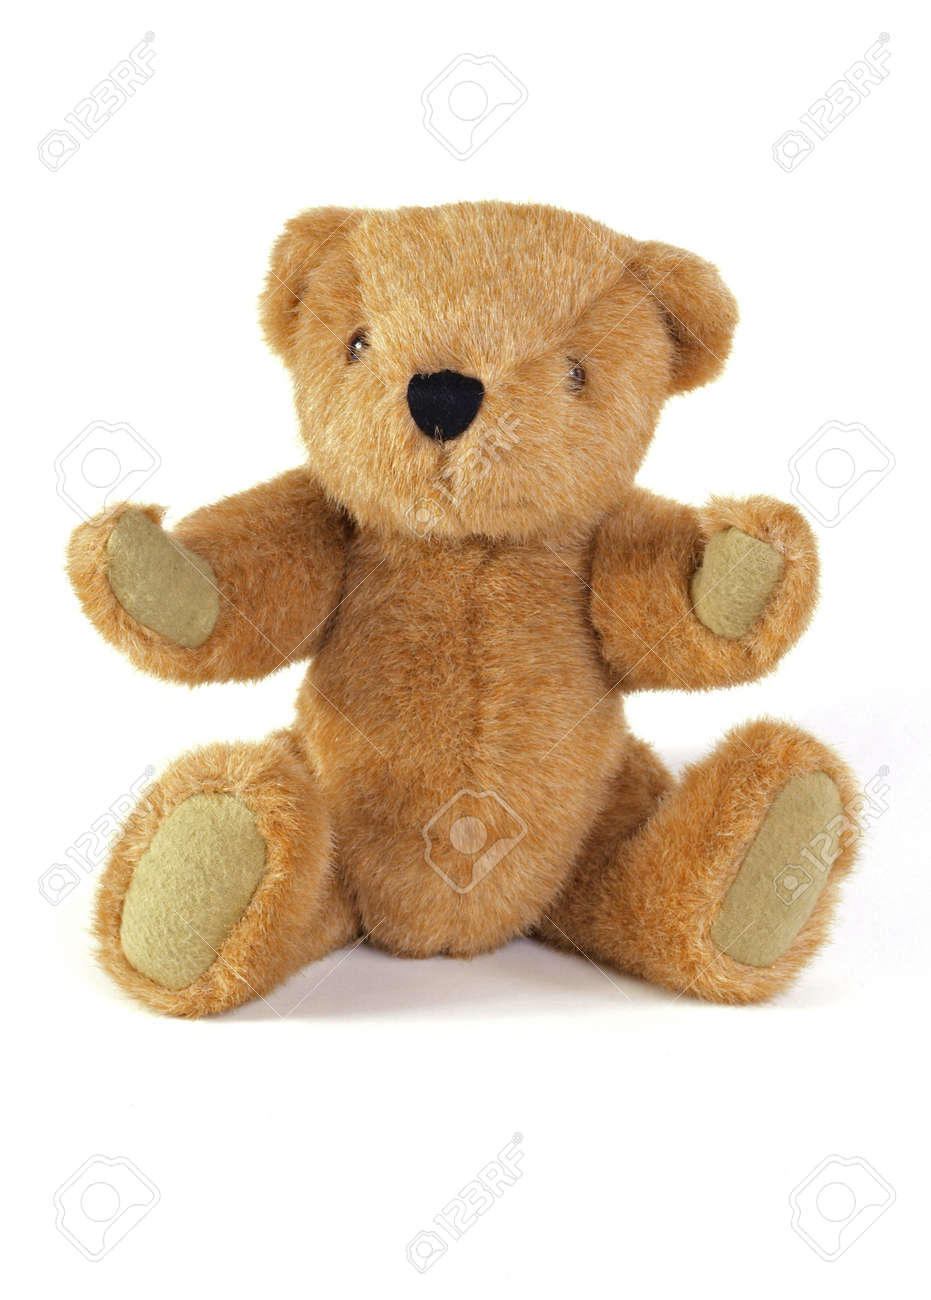 teddy bears images u0026 stock pictures royalty free teddy bears